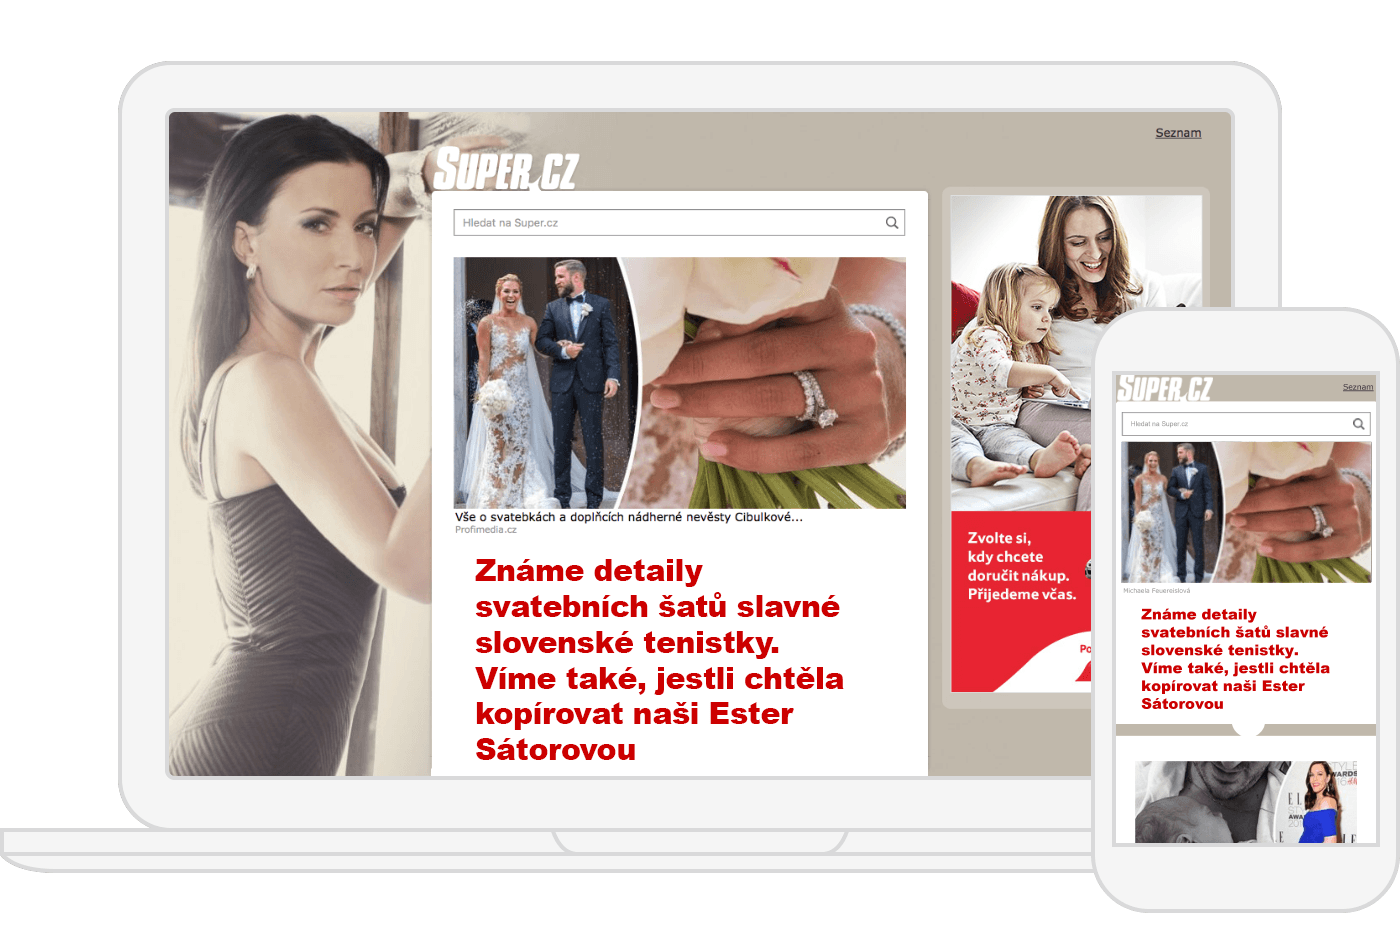 Example of an ad on Super.cz's homepage